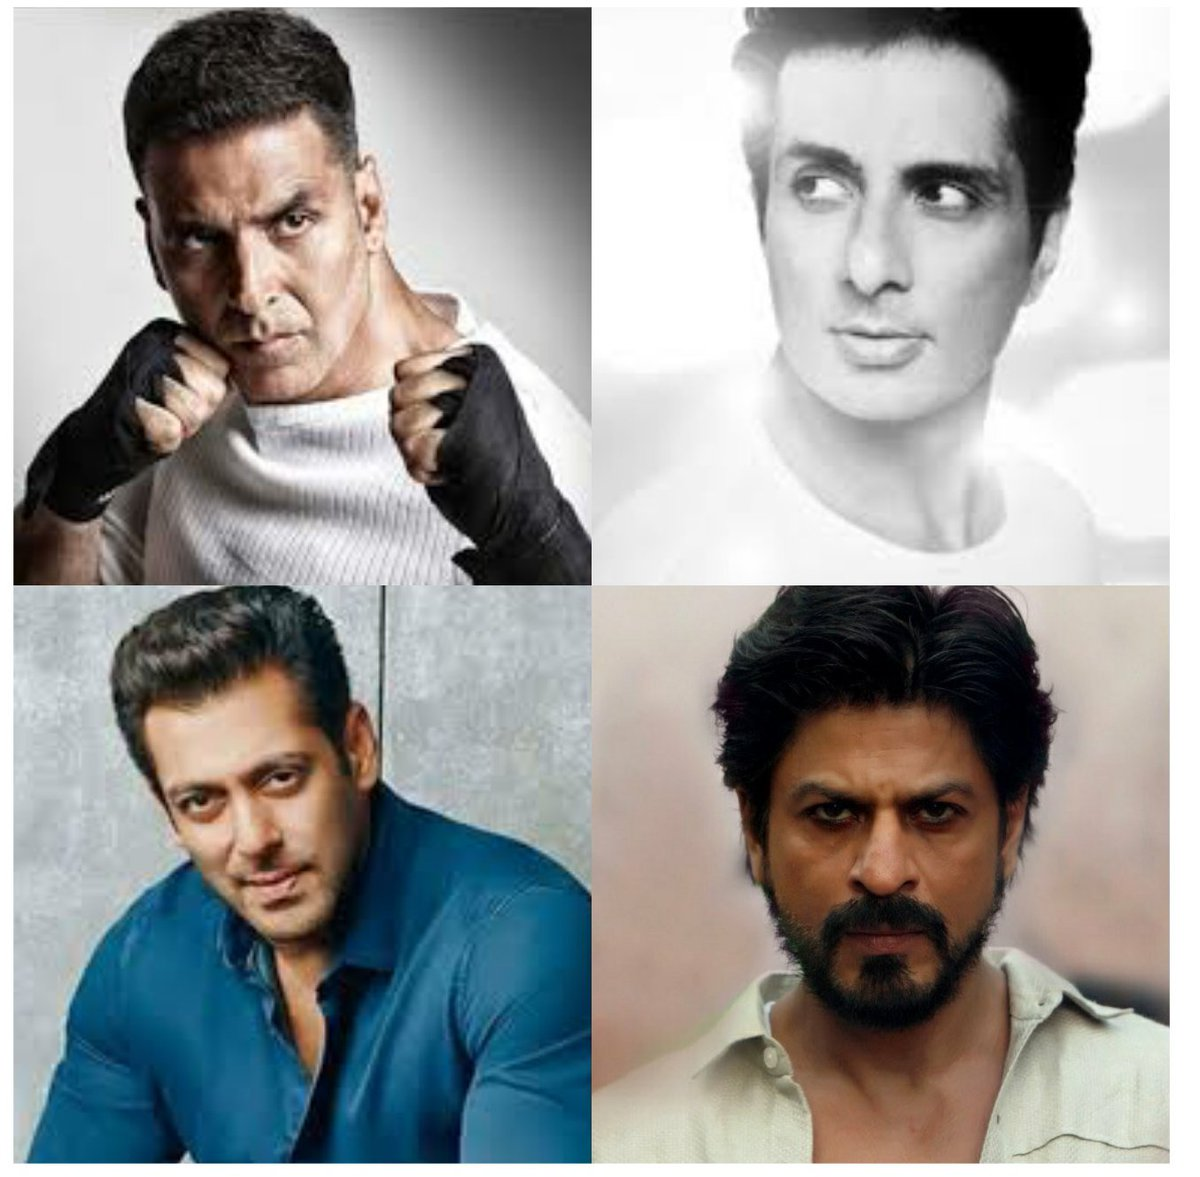 Final tweet count and potential reach of Top 3 biggest Bollywood birthday trends ever:- #HappyBirthdaySalmanKhan 1.6 M tweets, 2.7 B reach #HappyBirthdayAkshayKumar 1.2 M tweets, 1.7 B reach #HappyBirthdaySRK 950 K tweets, 4.1 B reach  Special mention #HBDRealHeroSonuSood